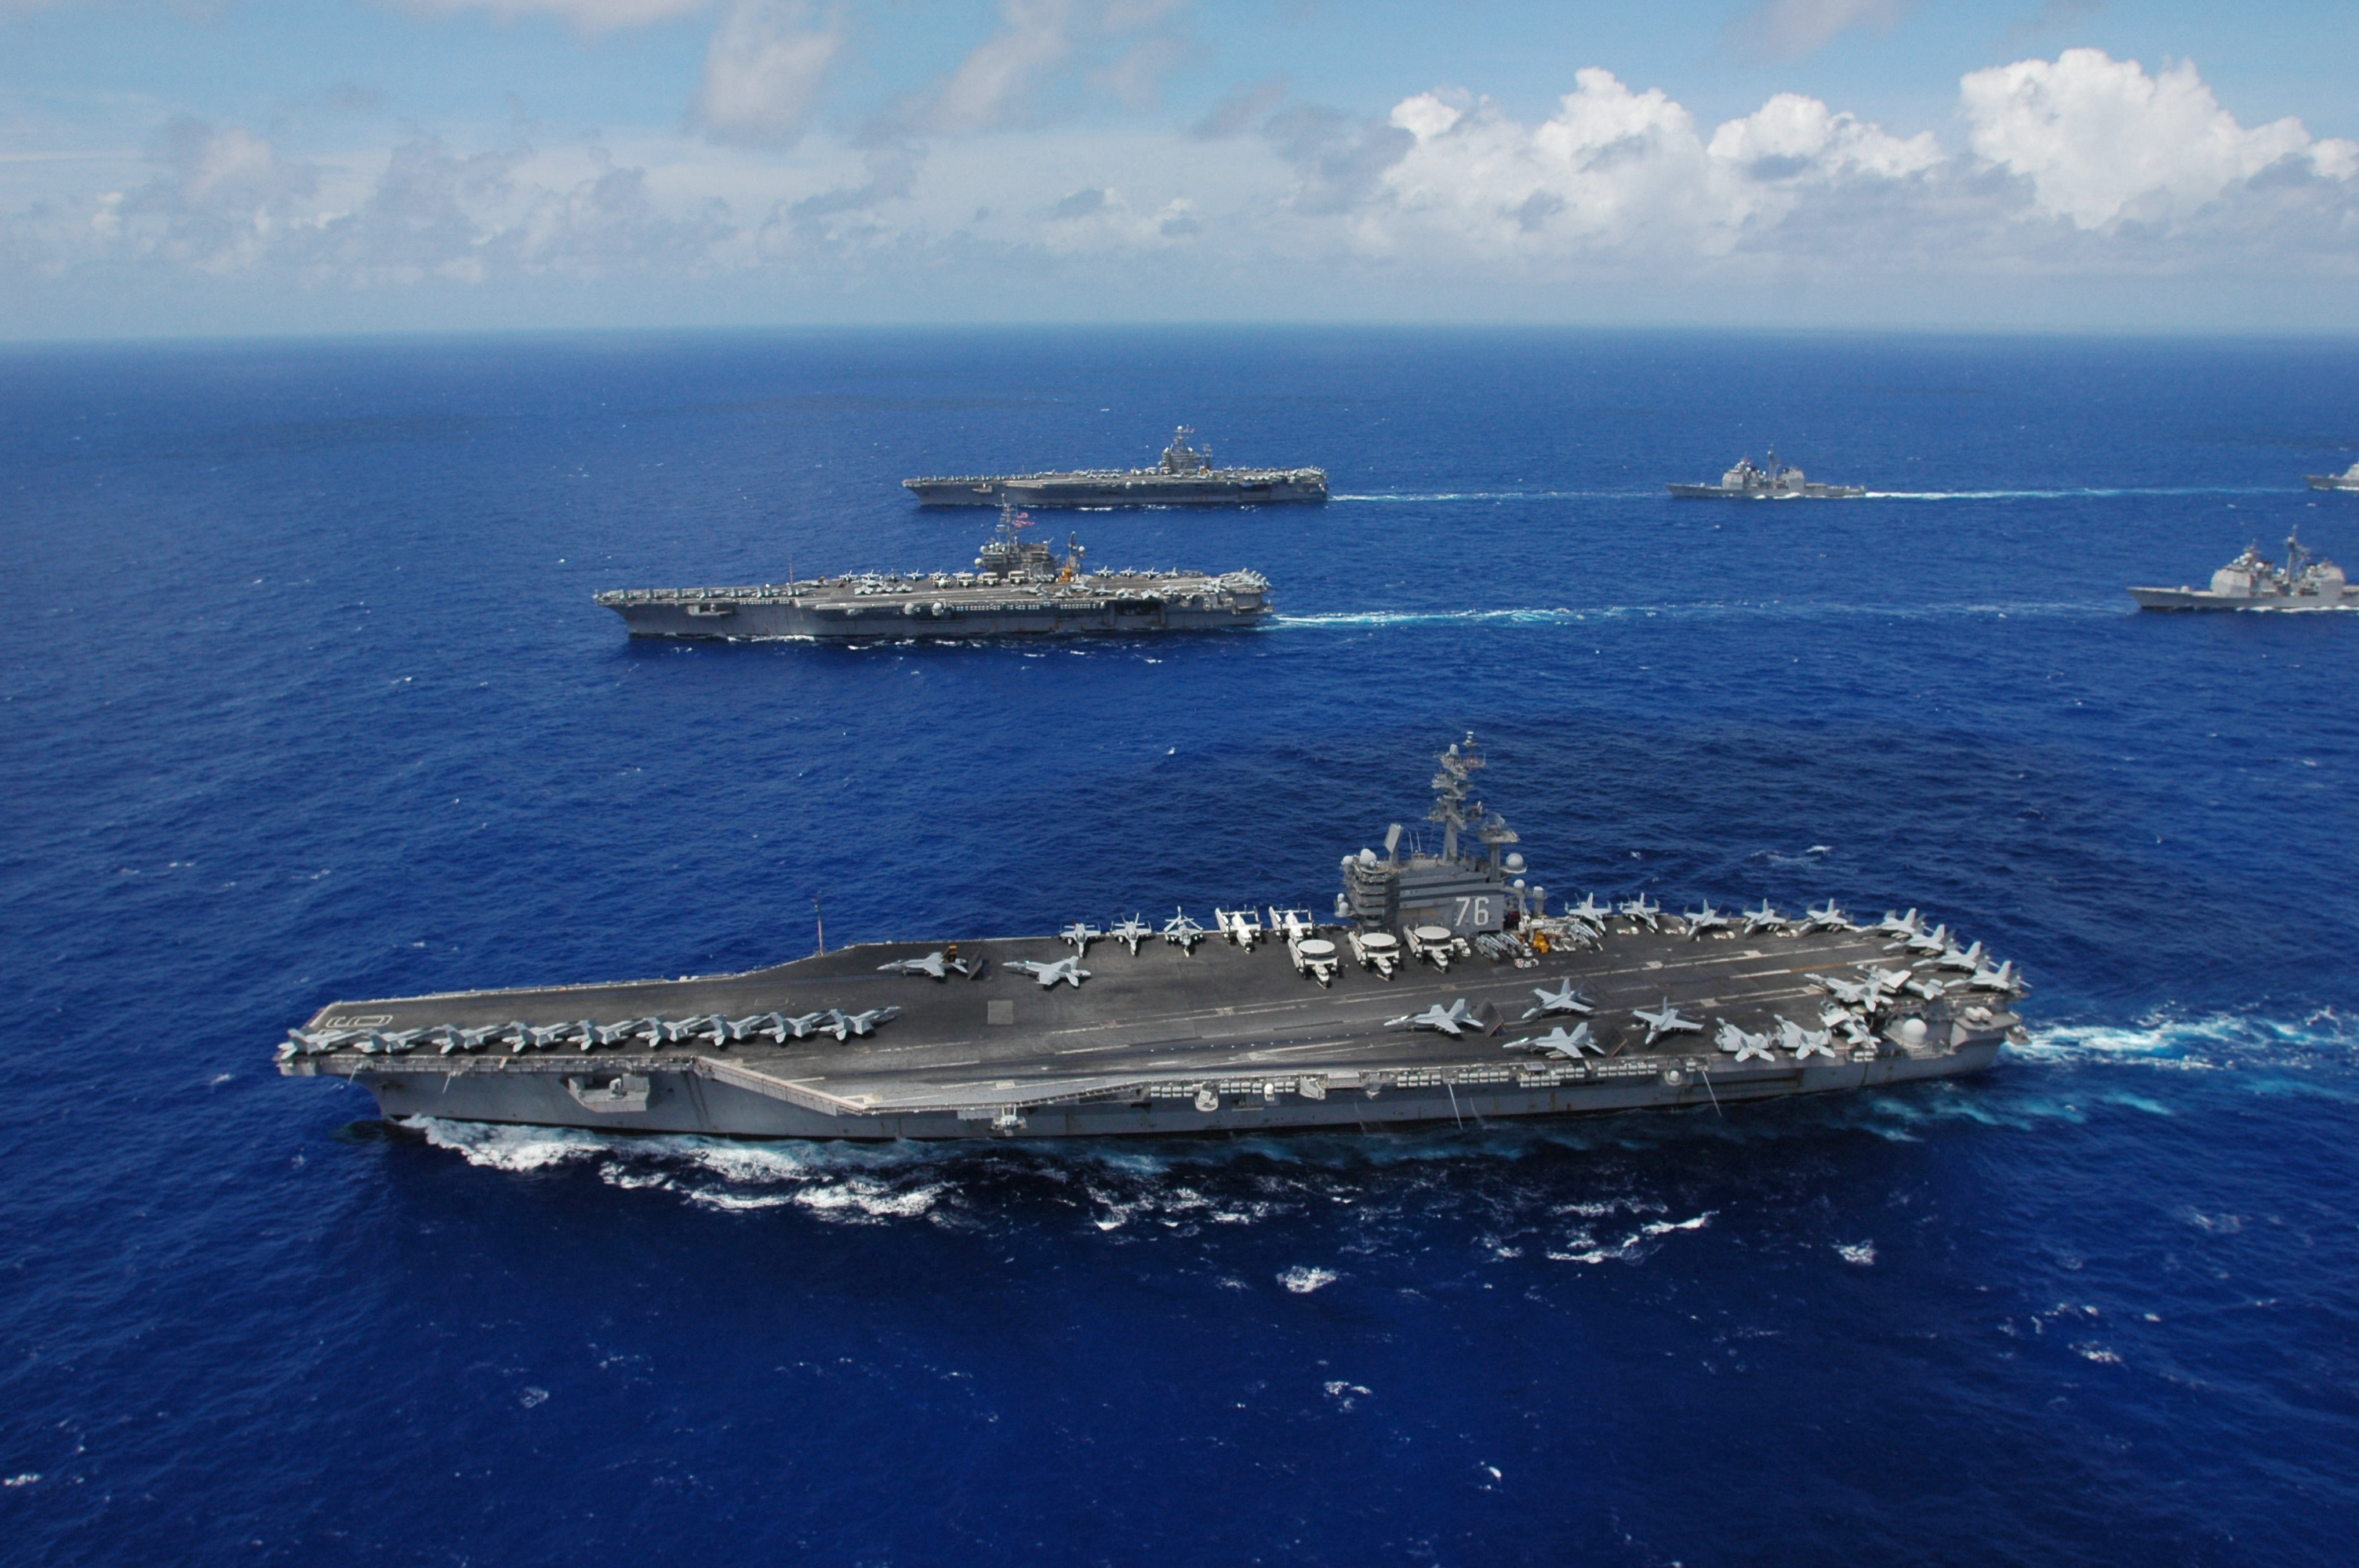 http://upload.wikimedia.org/wikipedia/commons/2/2f/US_Navy_060618-N-8492C-276_The_Nimitz-class_aircraft_carrier_USS_Ronald_Reagan_(CVN_76),_foreground,_USS_Kitty_Hawk_(CV_63),_center,_USS_Abraham_Lincoln_(CVN_72)_and_their_associated_carrier_strike_groups_steam_in_formation.jpg